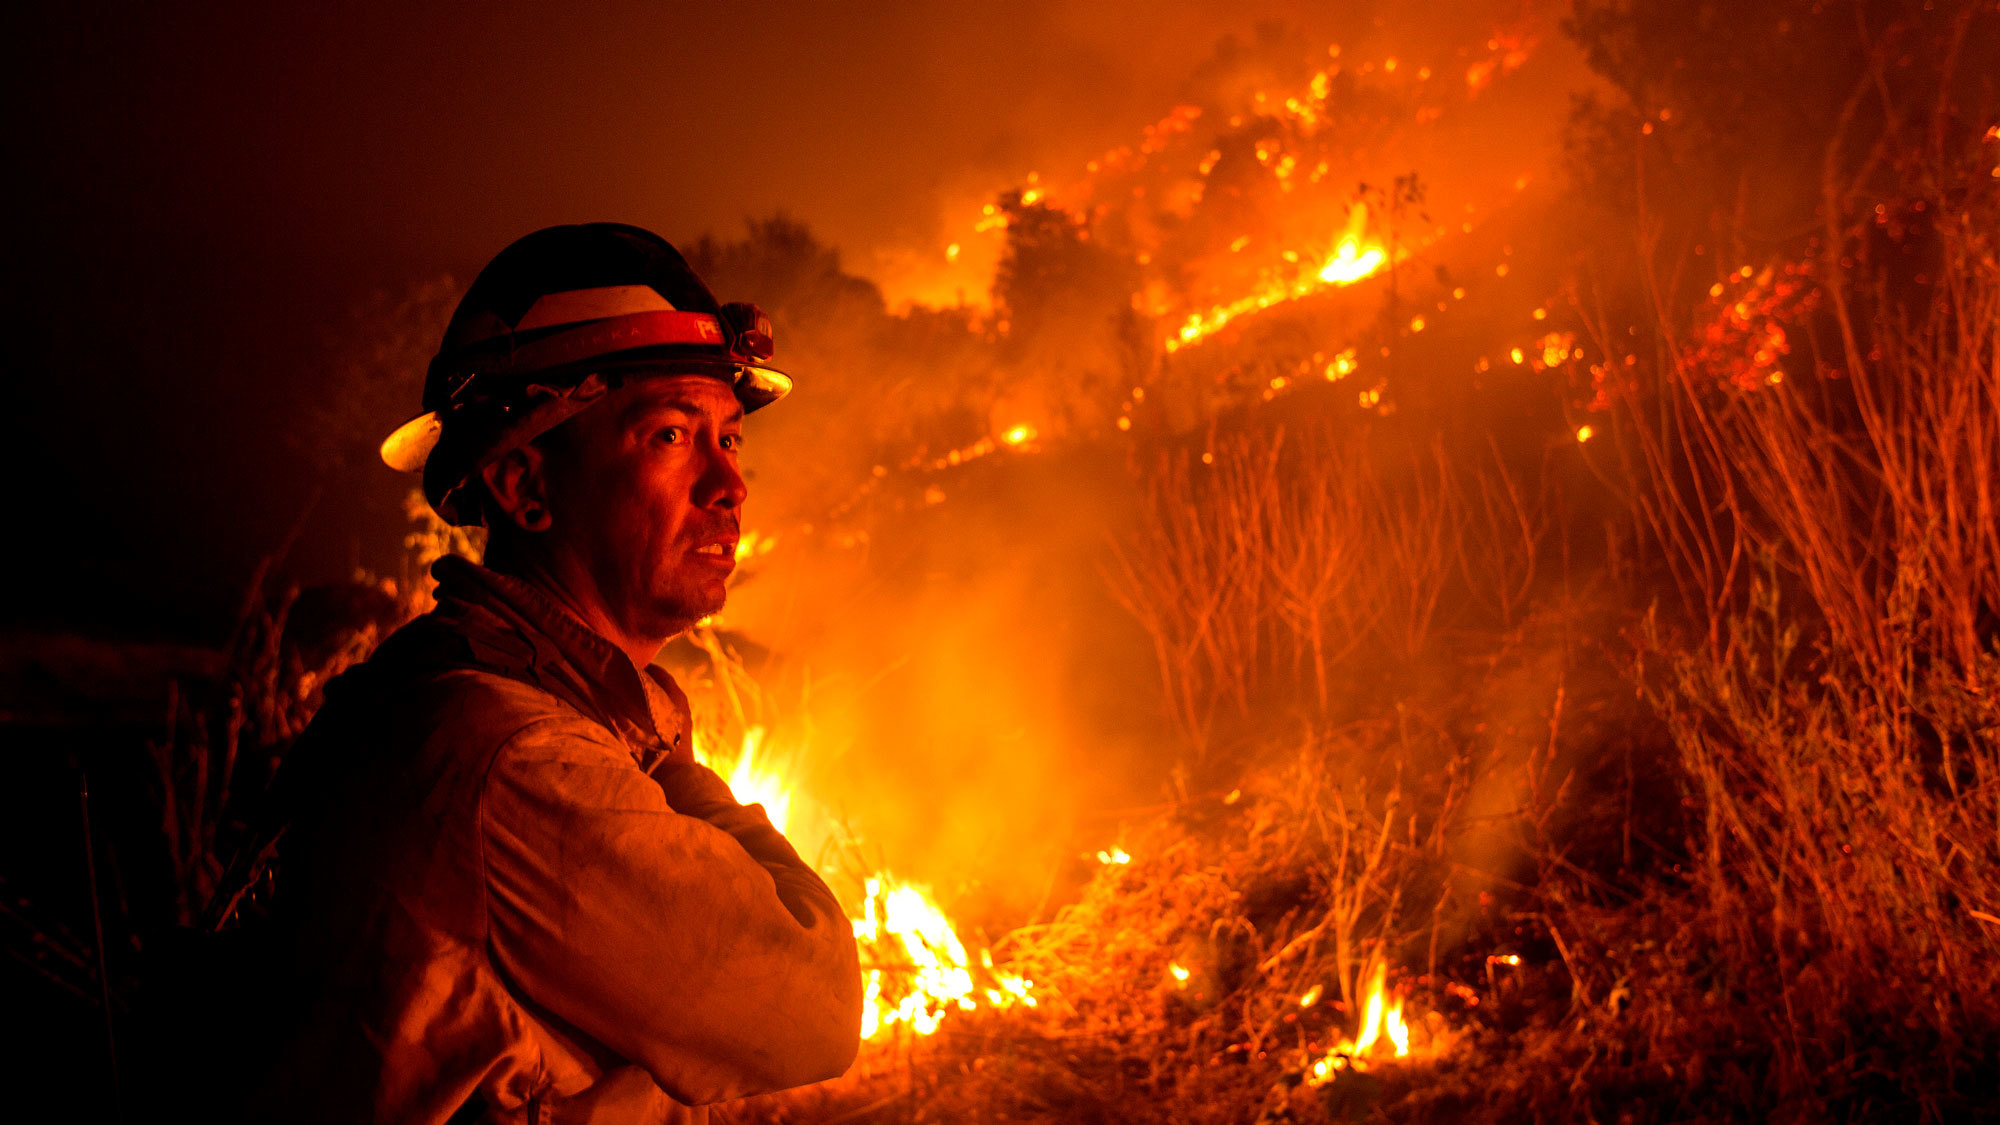 The Age of Megafires: The World Hits a Climate Tipping Point